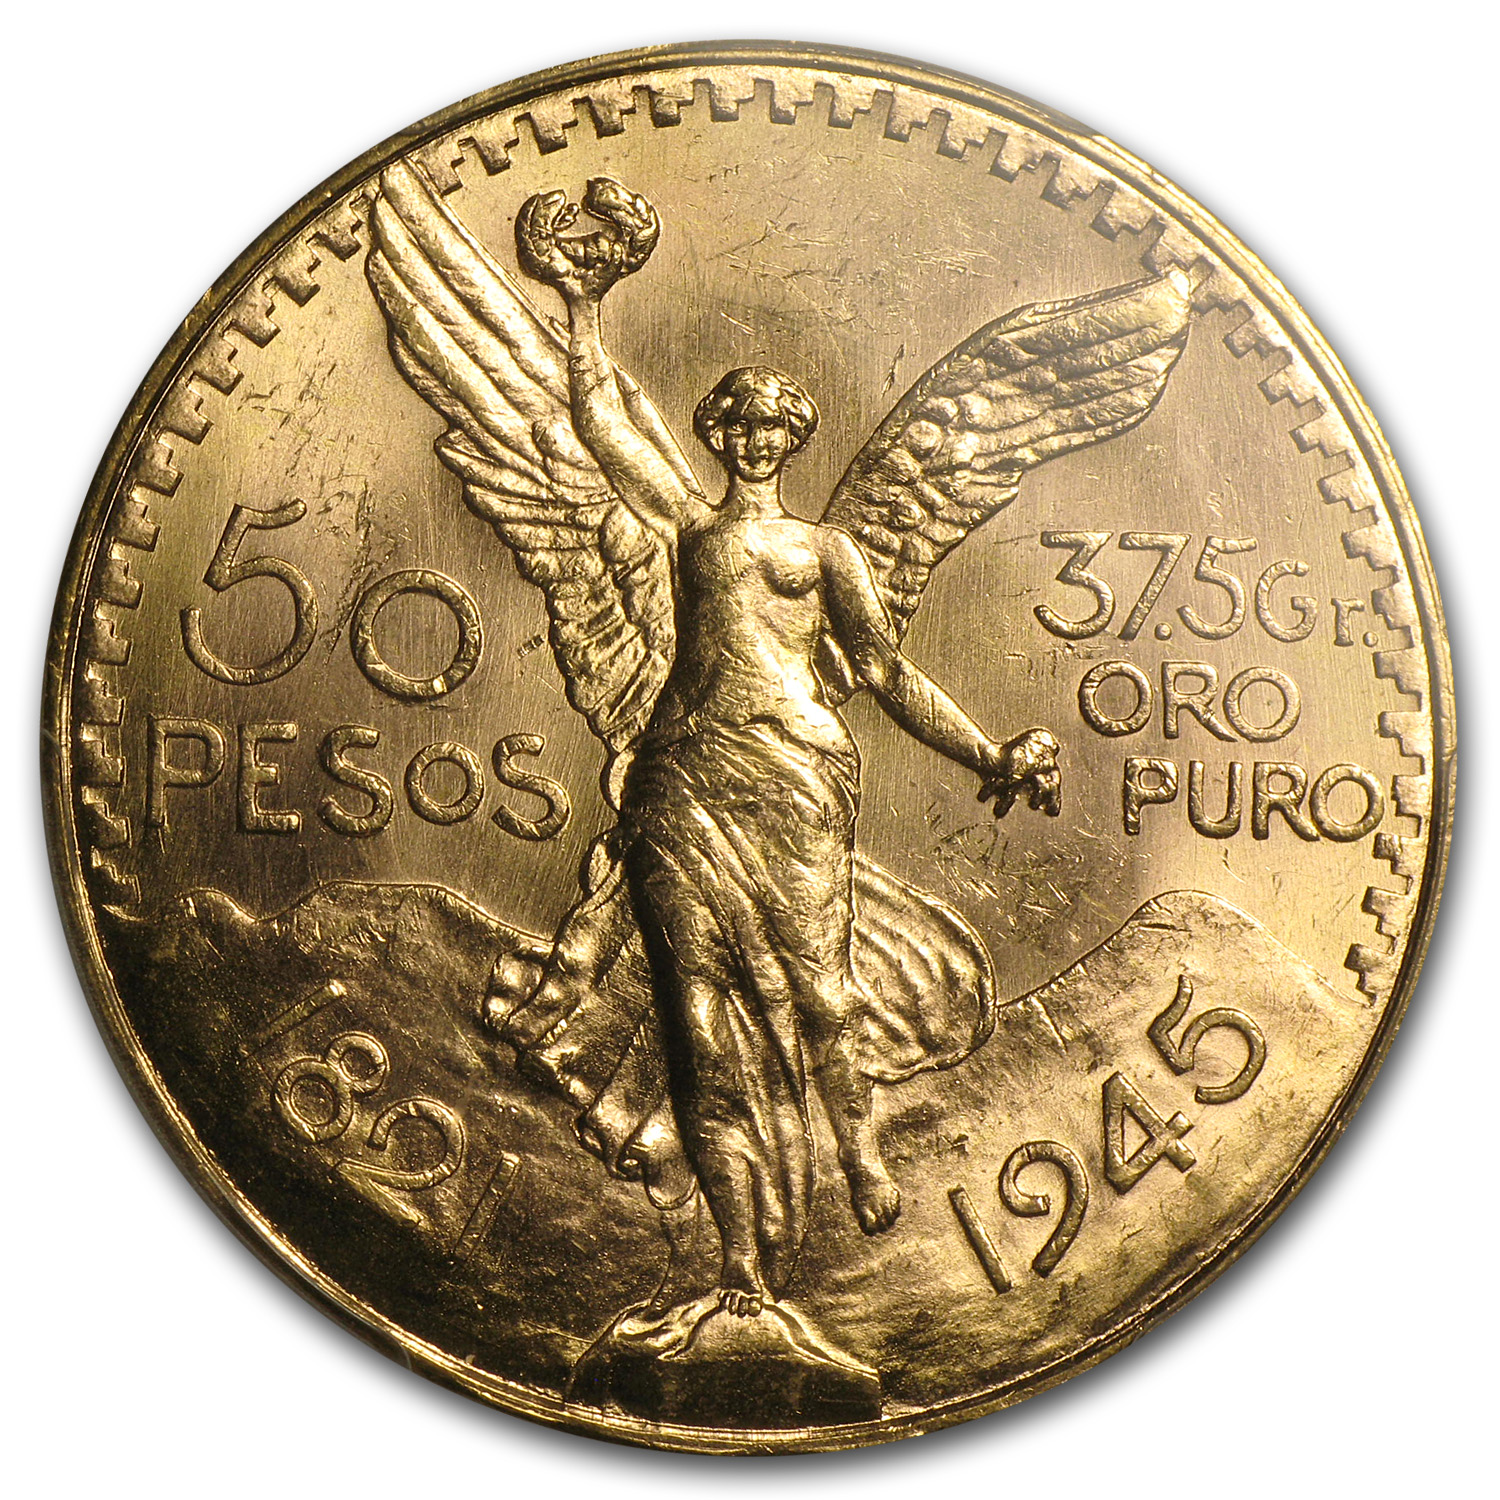 Mexico 1945 50 Pesos Gold MS-64 PCGS